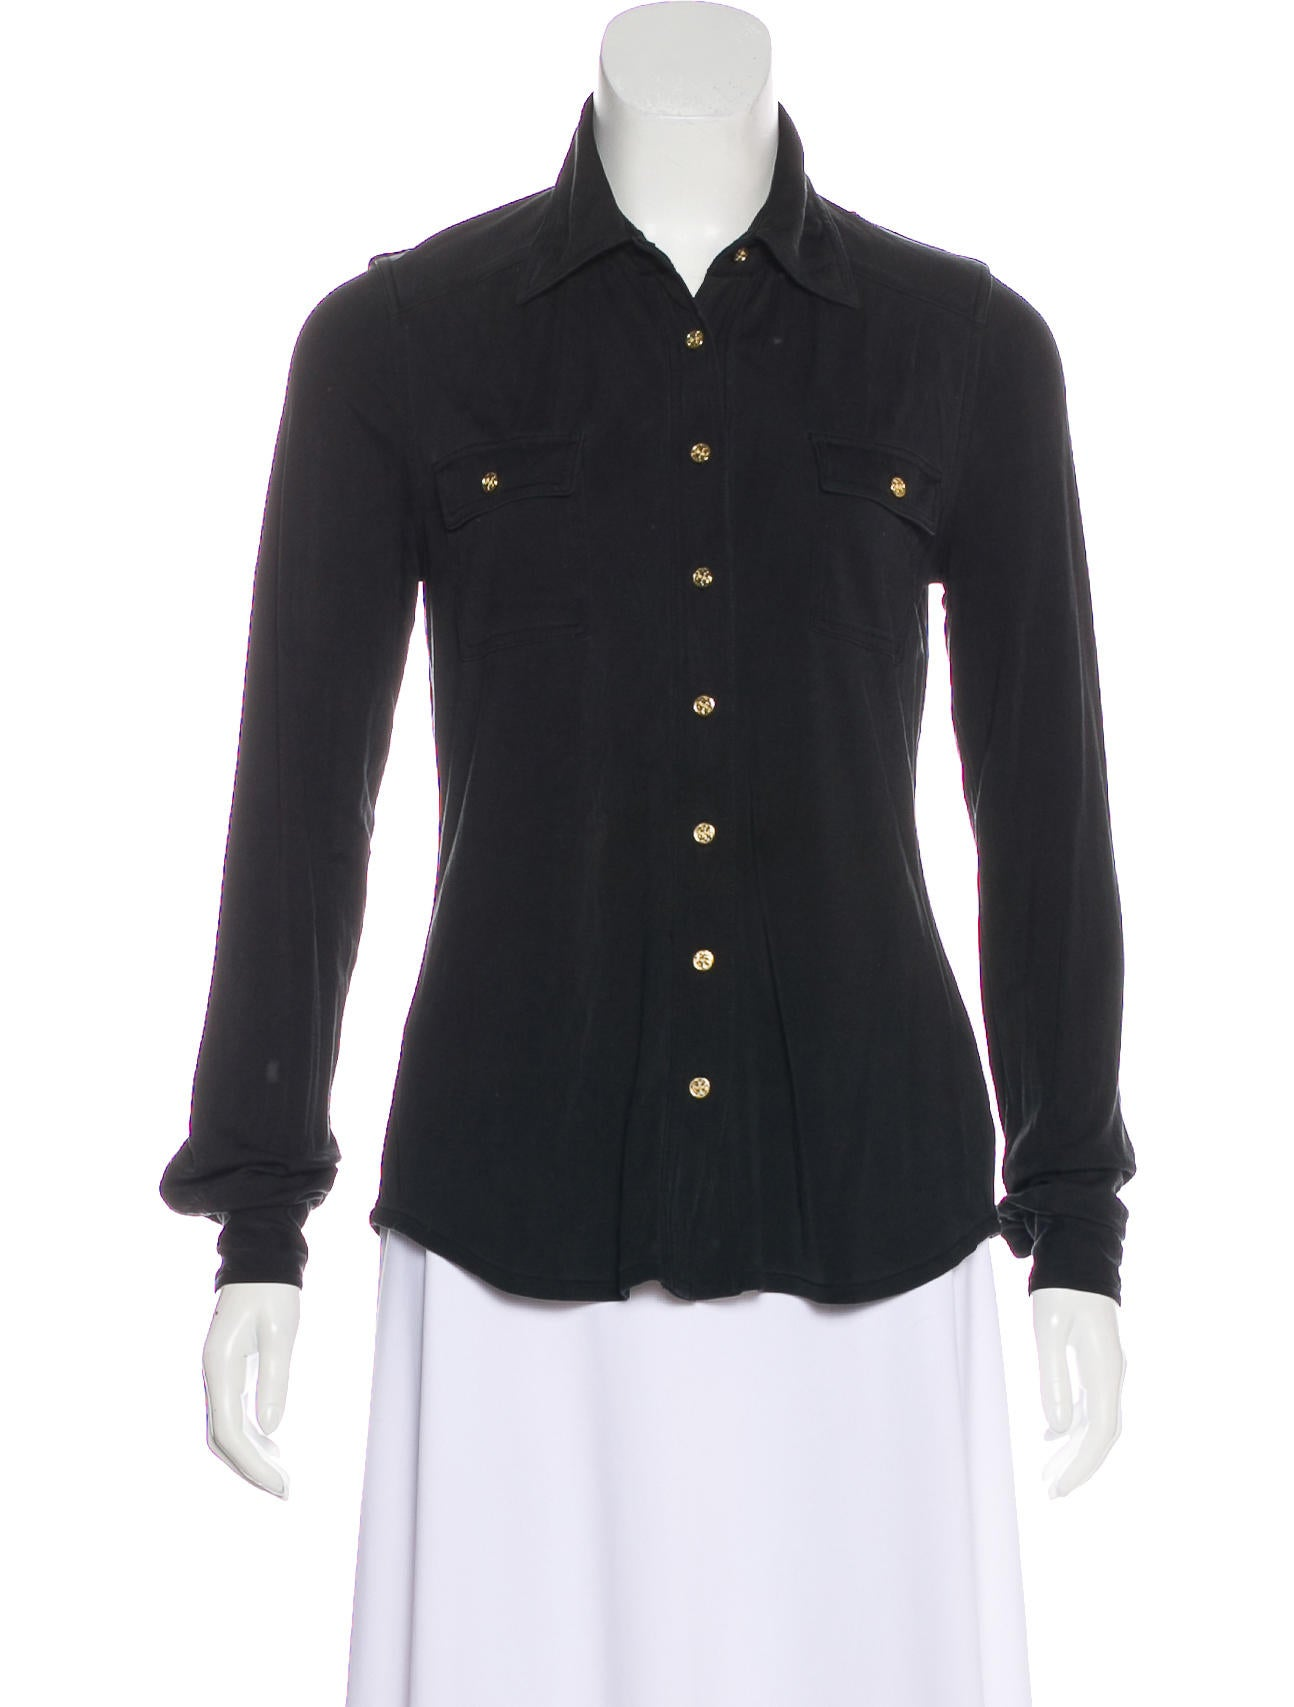 Tory Burch Silk Button-Up Top Buy Cheap Price Clearance Visa Payment Outlet Brand New Unisex Find Great Sale Online J13Or09Wj5